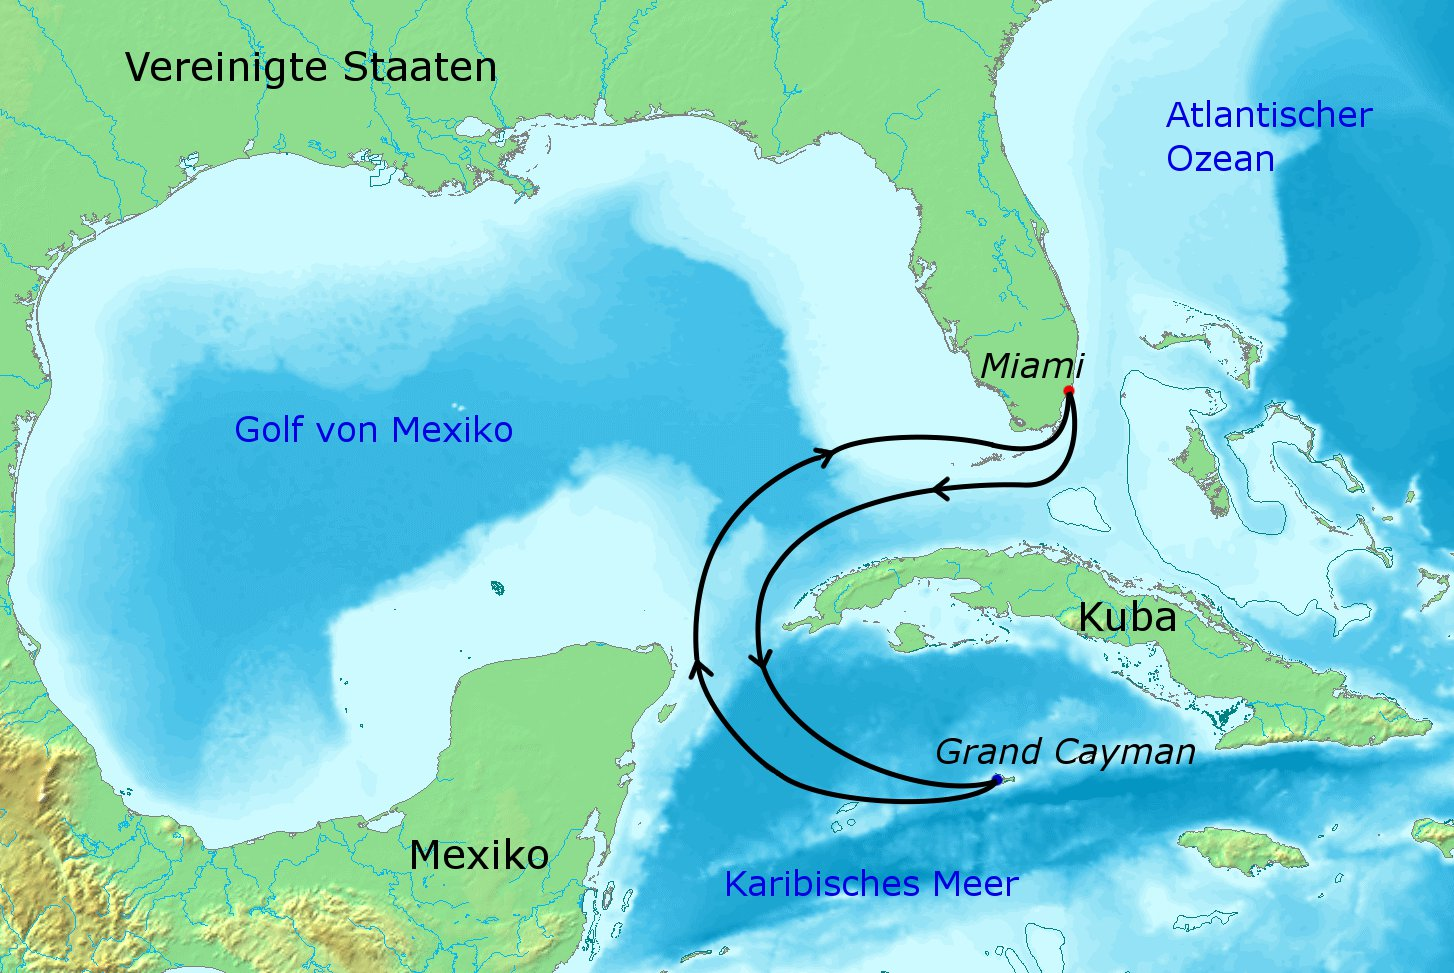 File:Map of the 70000 Tons of Metal Cruise (2012).jpg - Wikipedia on world map with seas, world map including seas, european map with seas, greek seas, earth map with seas, france map seas, russia map with seas, oceans and seas, caspian sea map seas, map north, latin america map seas, greece map with seas, russian seas, europe map seas, world map showing seas, google map aegean seas, world map 7 seas, map south china sea china, mediterranean sea map and other surrounding seas, bering and chukchi seas,